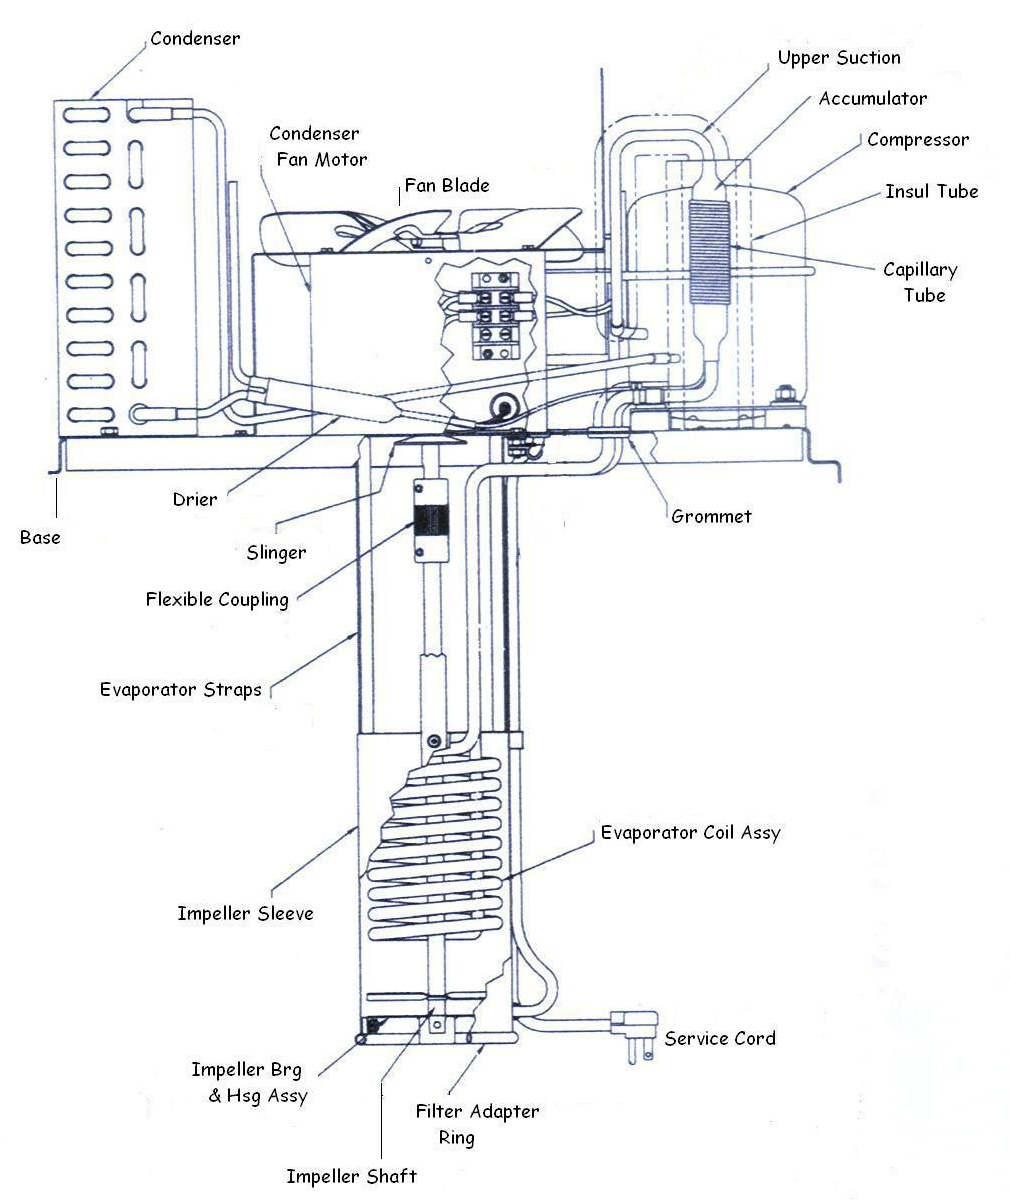 Gas Station Fuel Pump additionally Trane Chiller Diagram furthermore  besides Water Chiller Diagram together with Heat pump and refrigeration cycle. on schematic of an absorption chiller